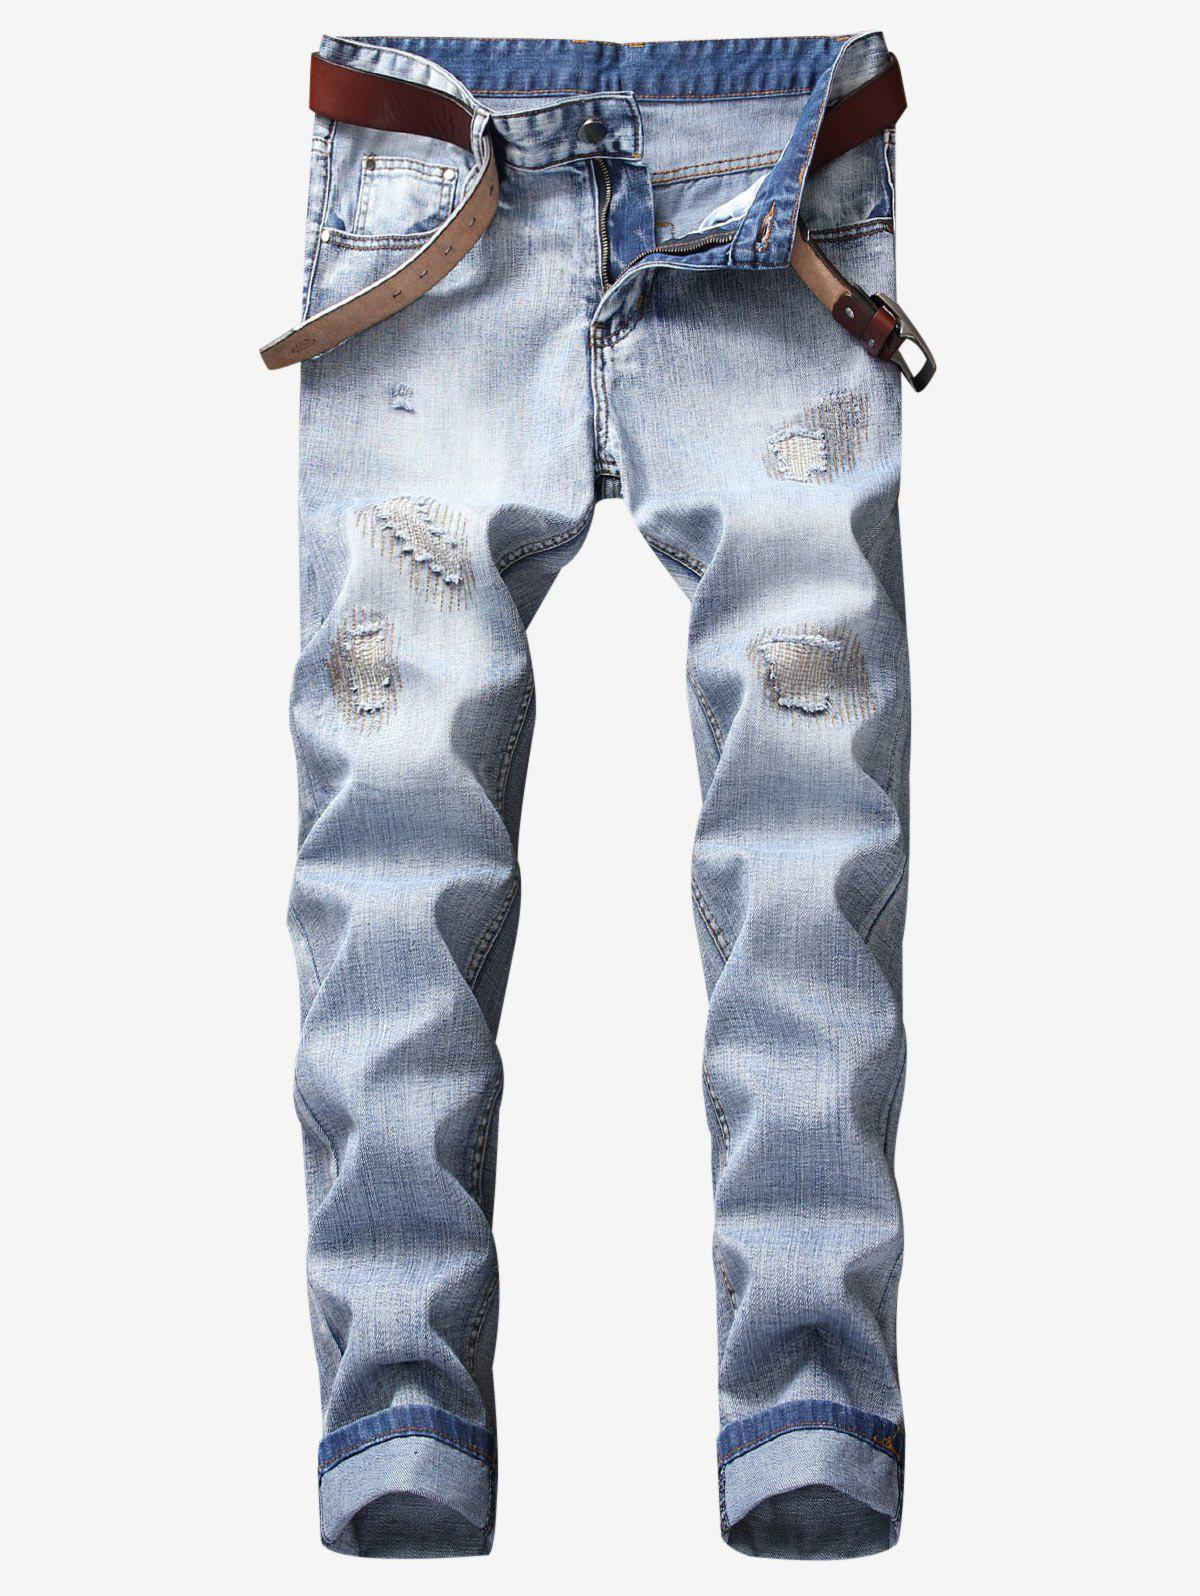 Fancy Ripped Stitching Reattached Patch Jeans